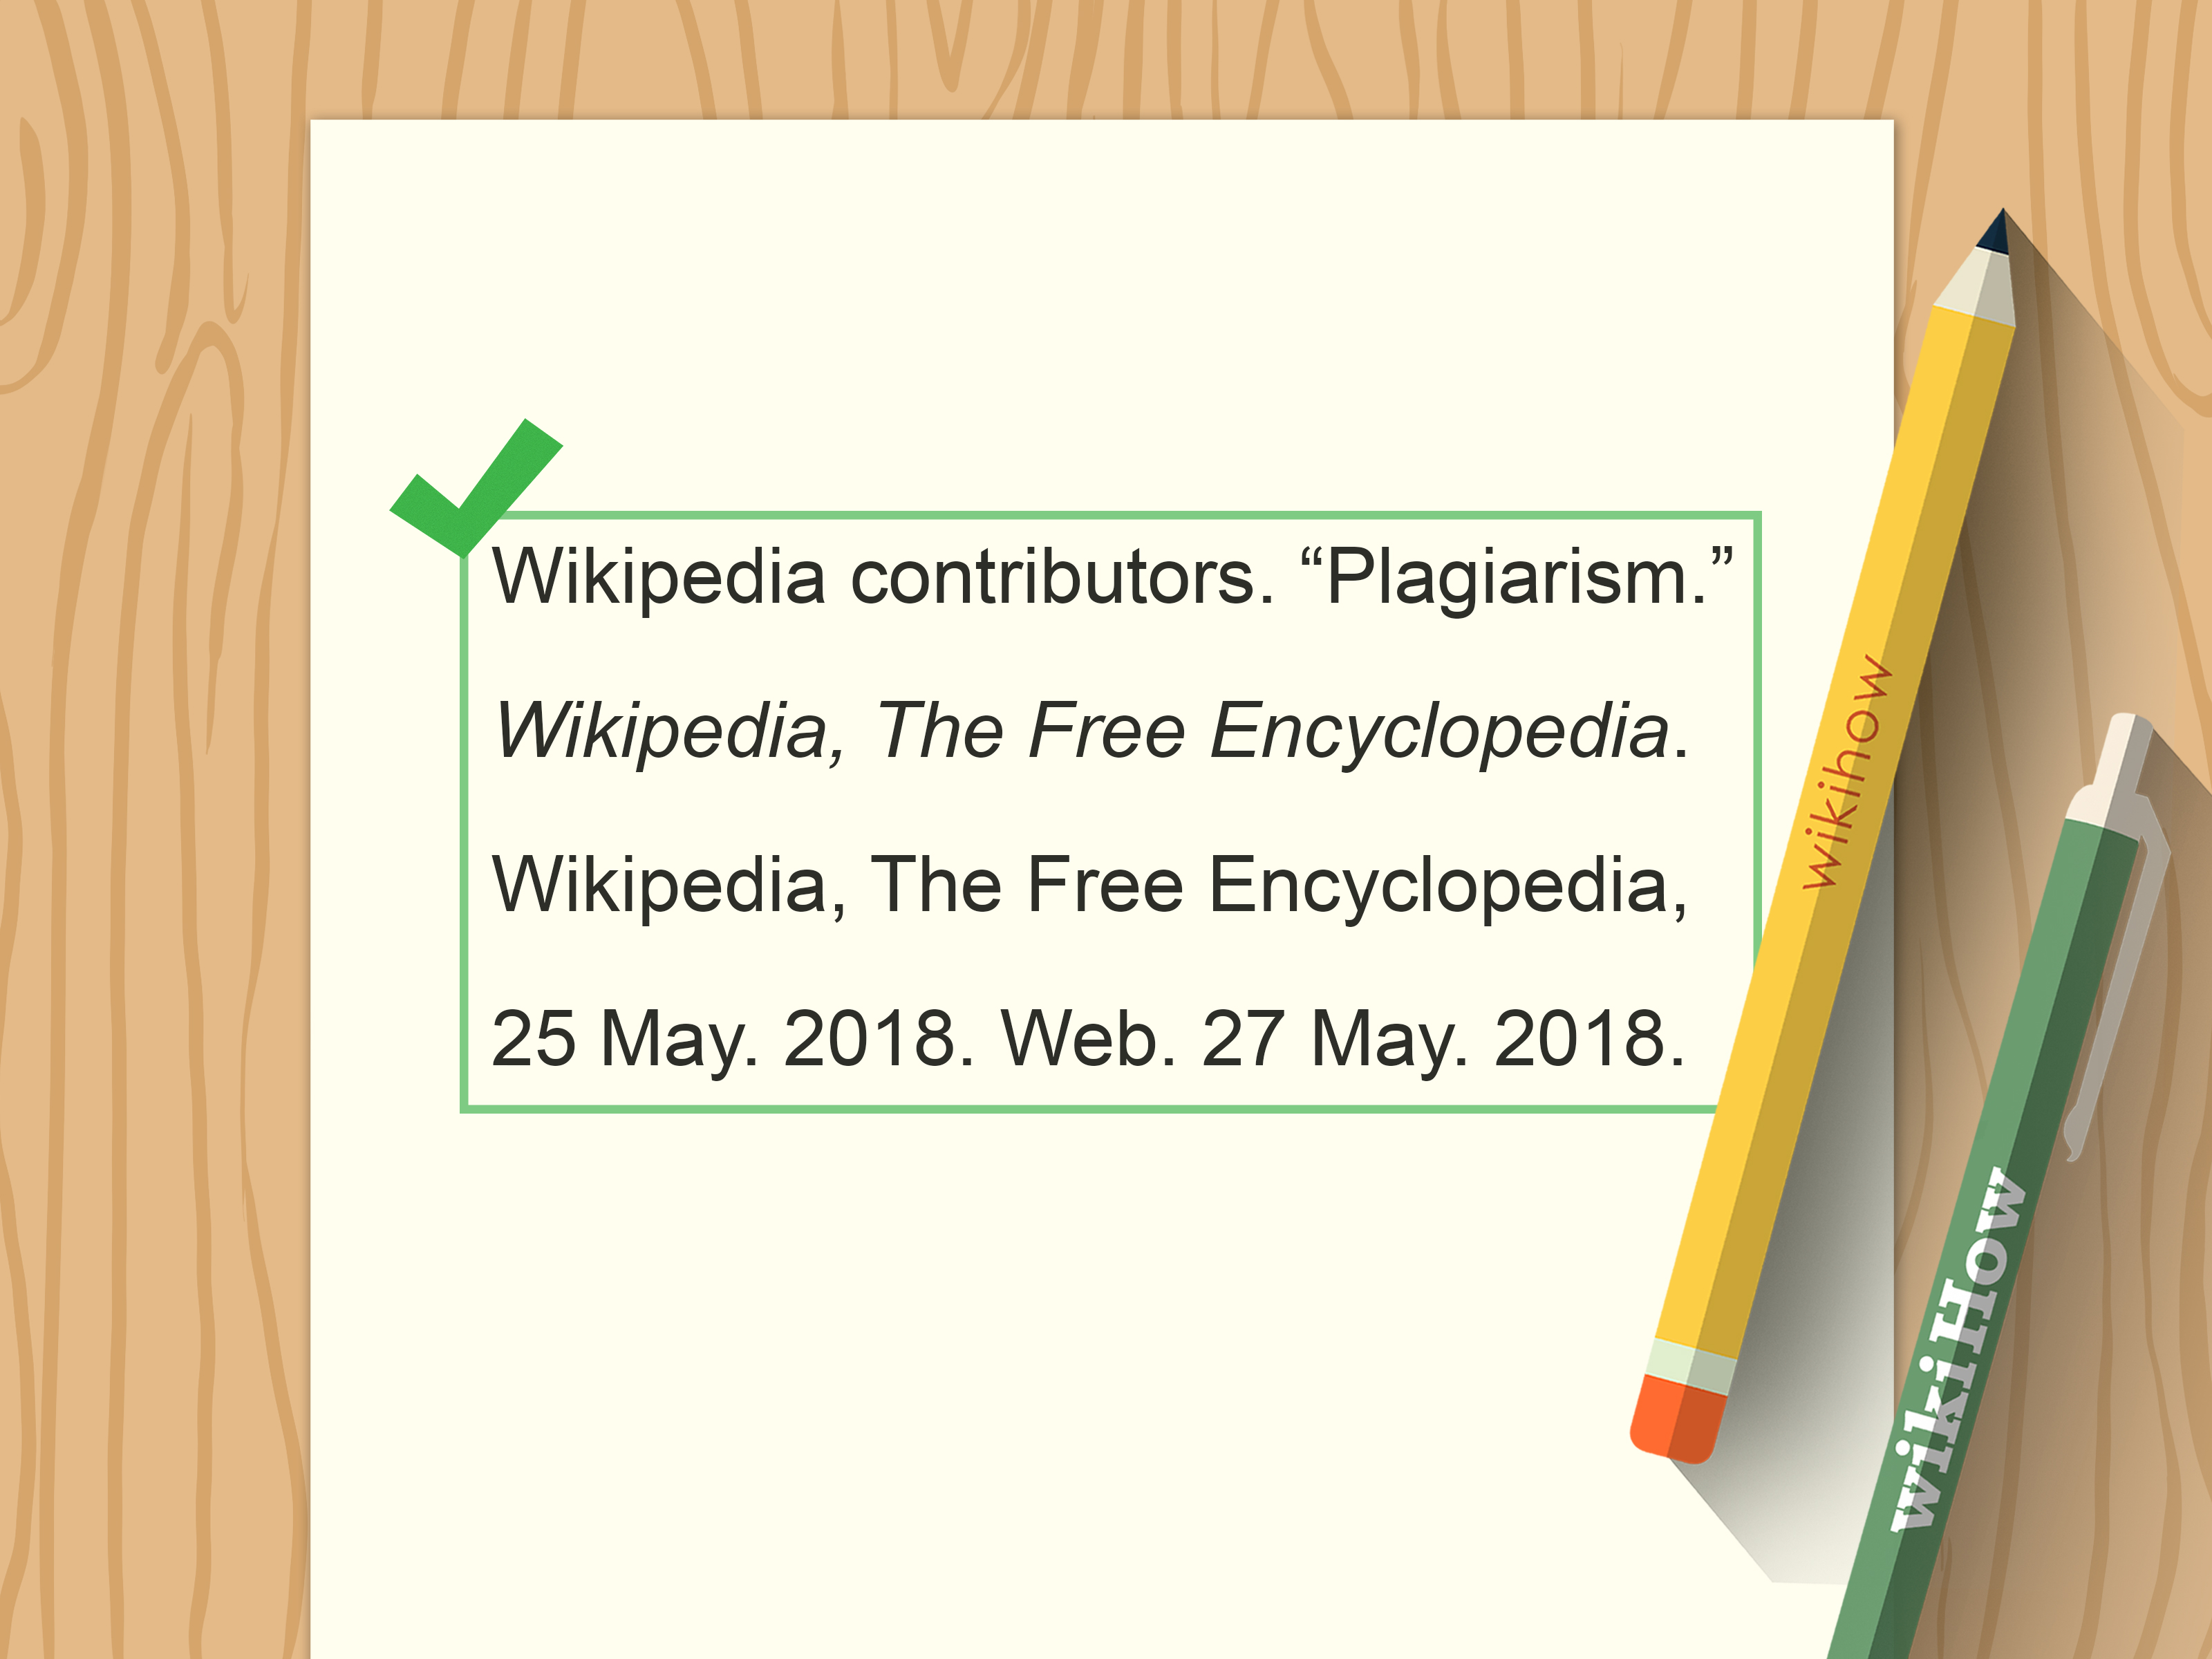 013 Cite Wikipedia Article In Mla Format Step Research Paper Incredible Citing Citation Works Cited Page Example Full